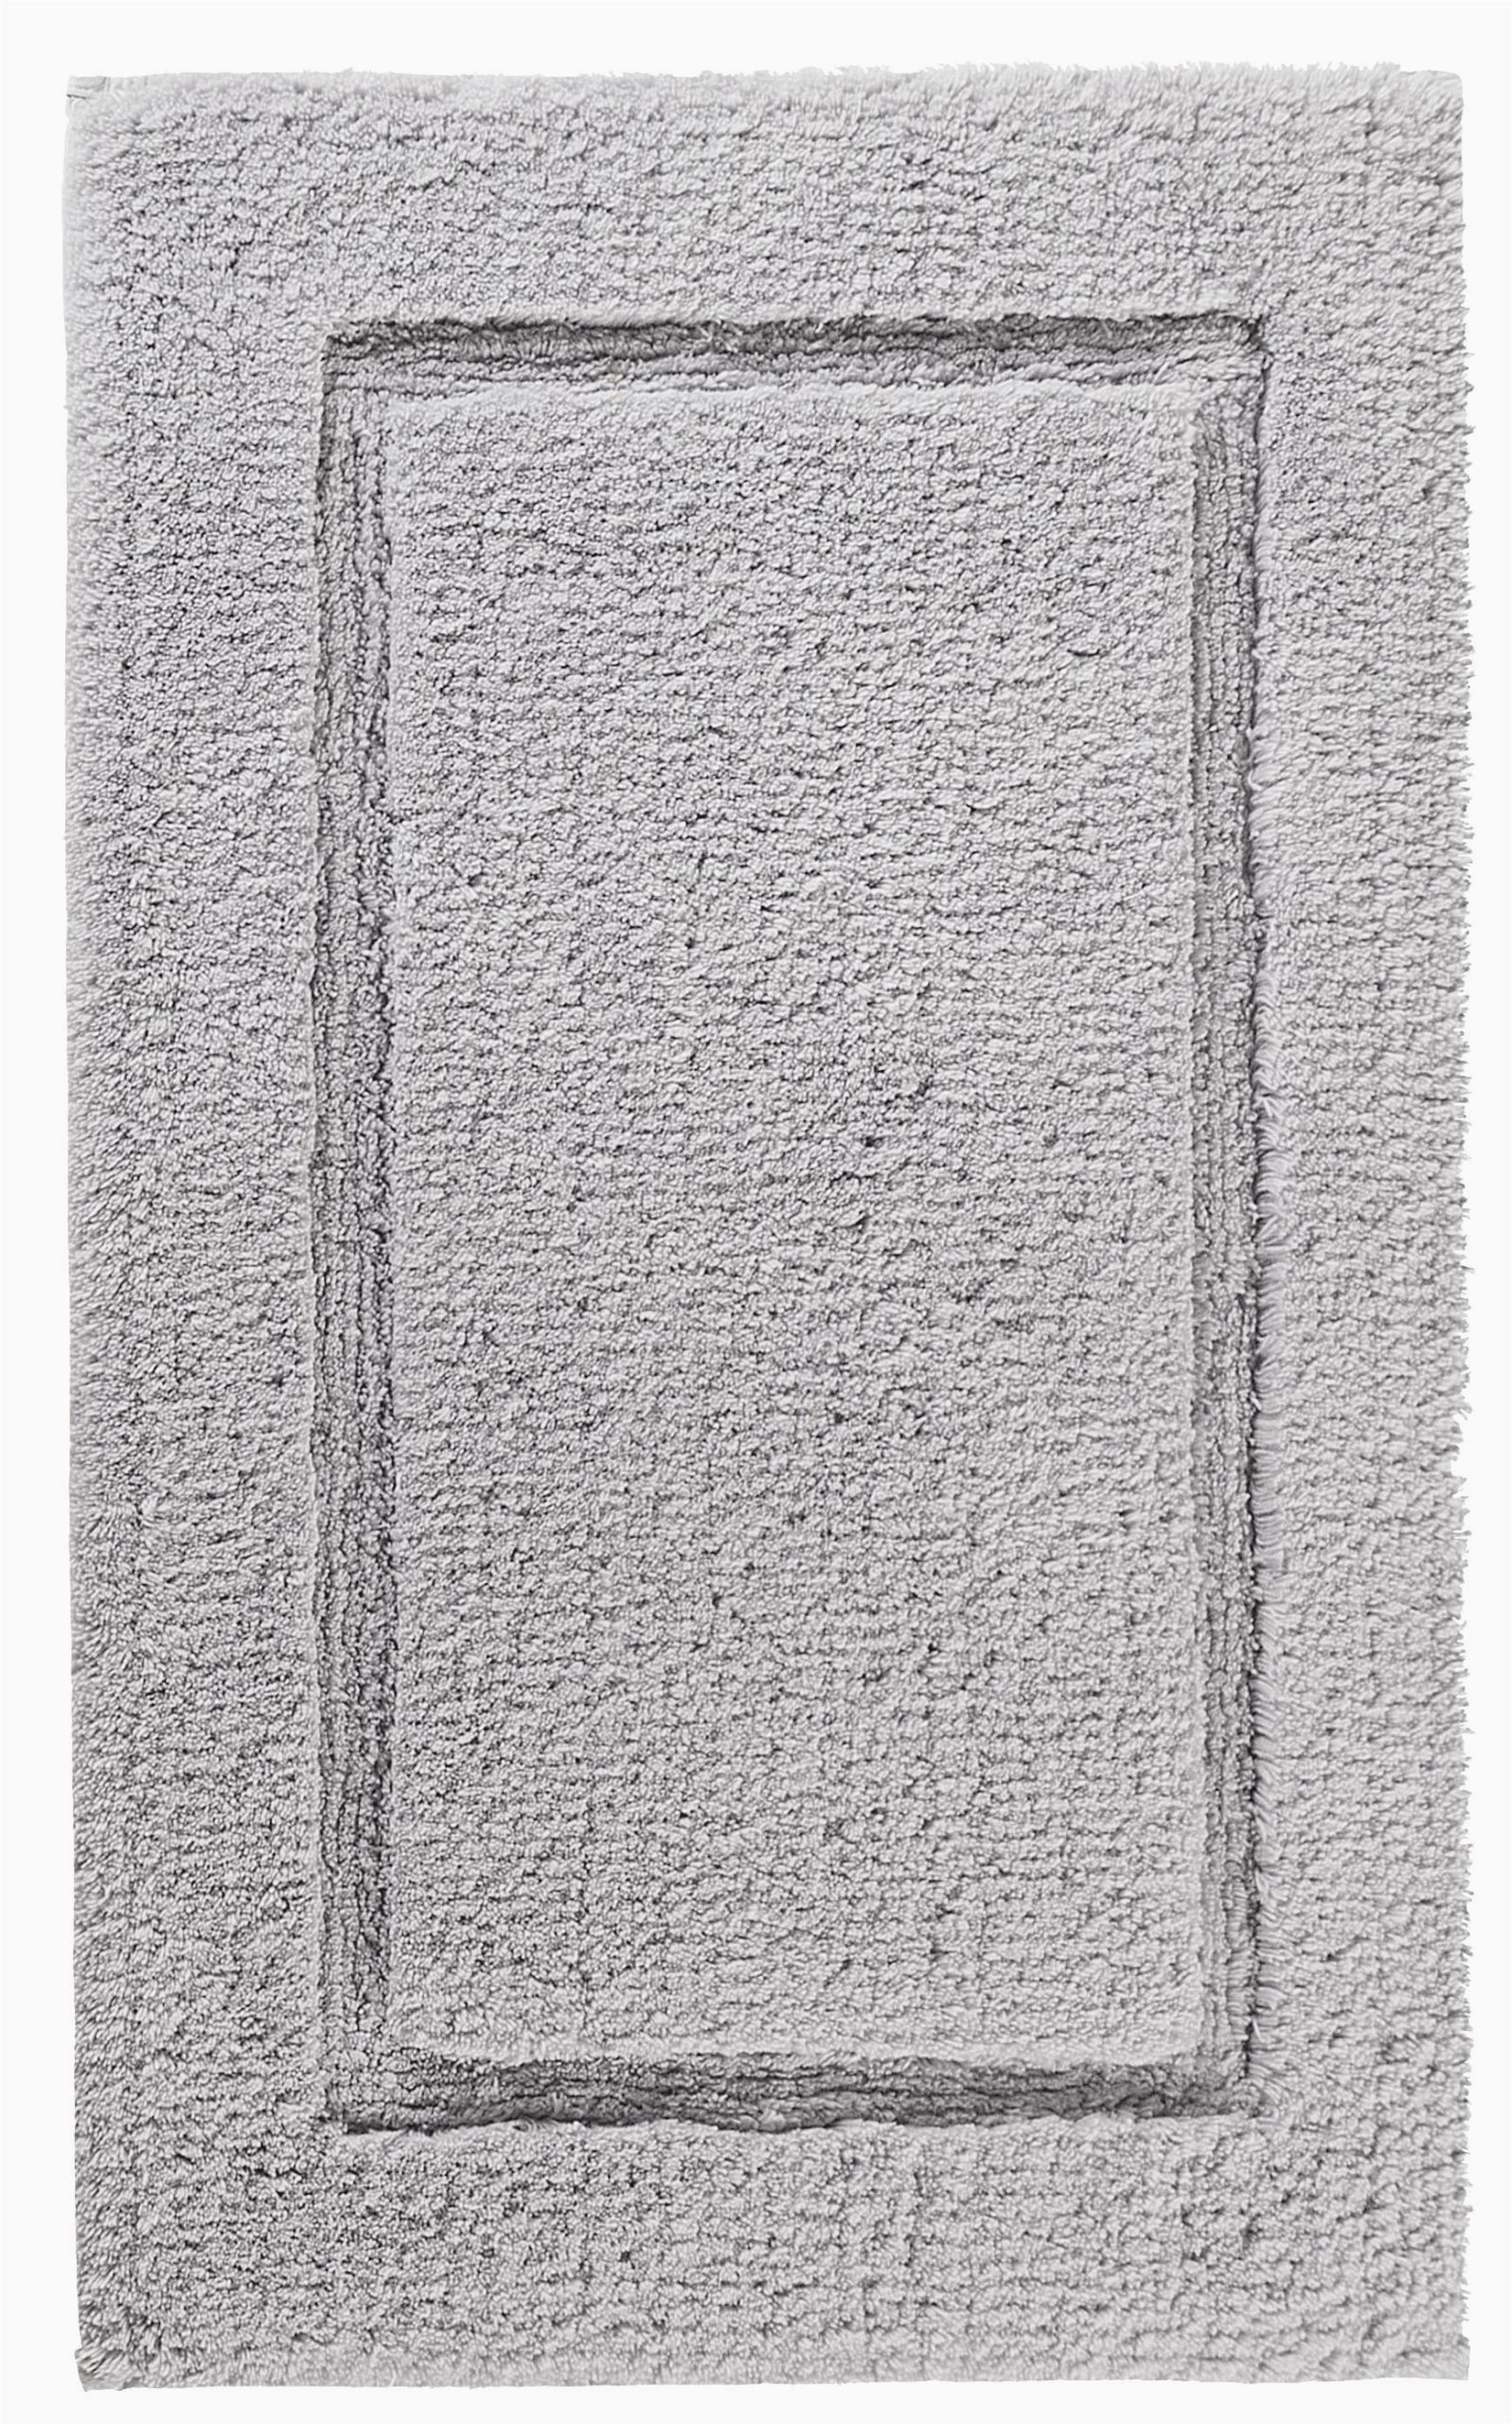 graccioza bathroom mats 20x31 silver prestige bath rug in 1800x